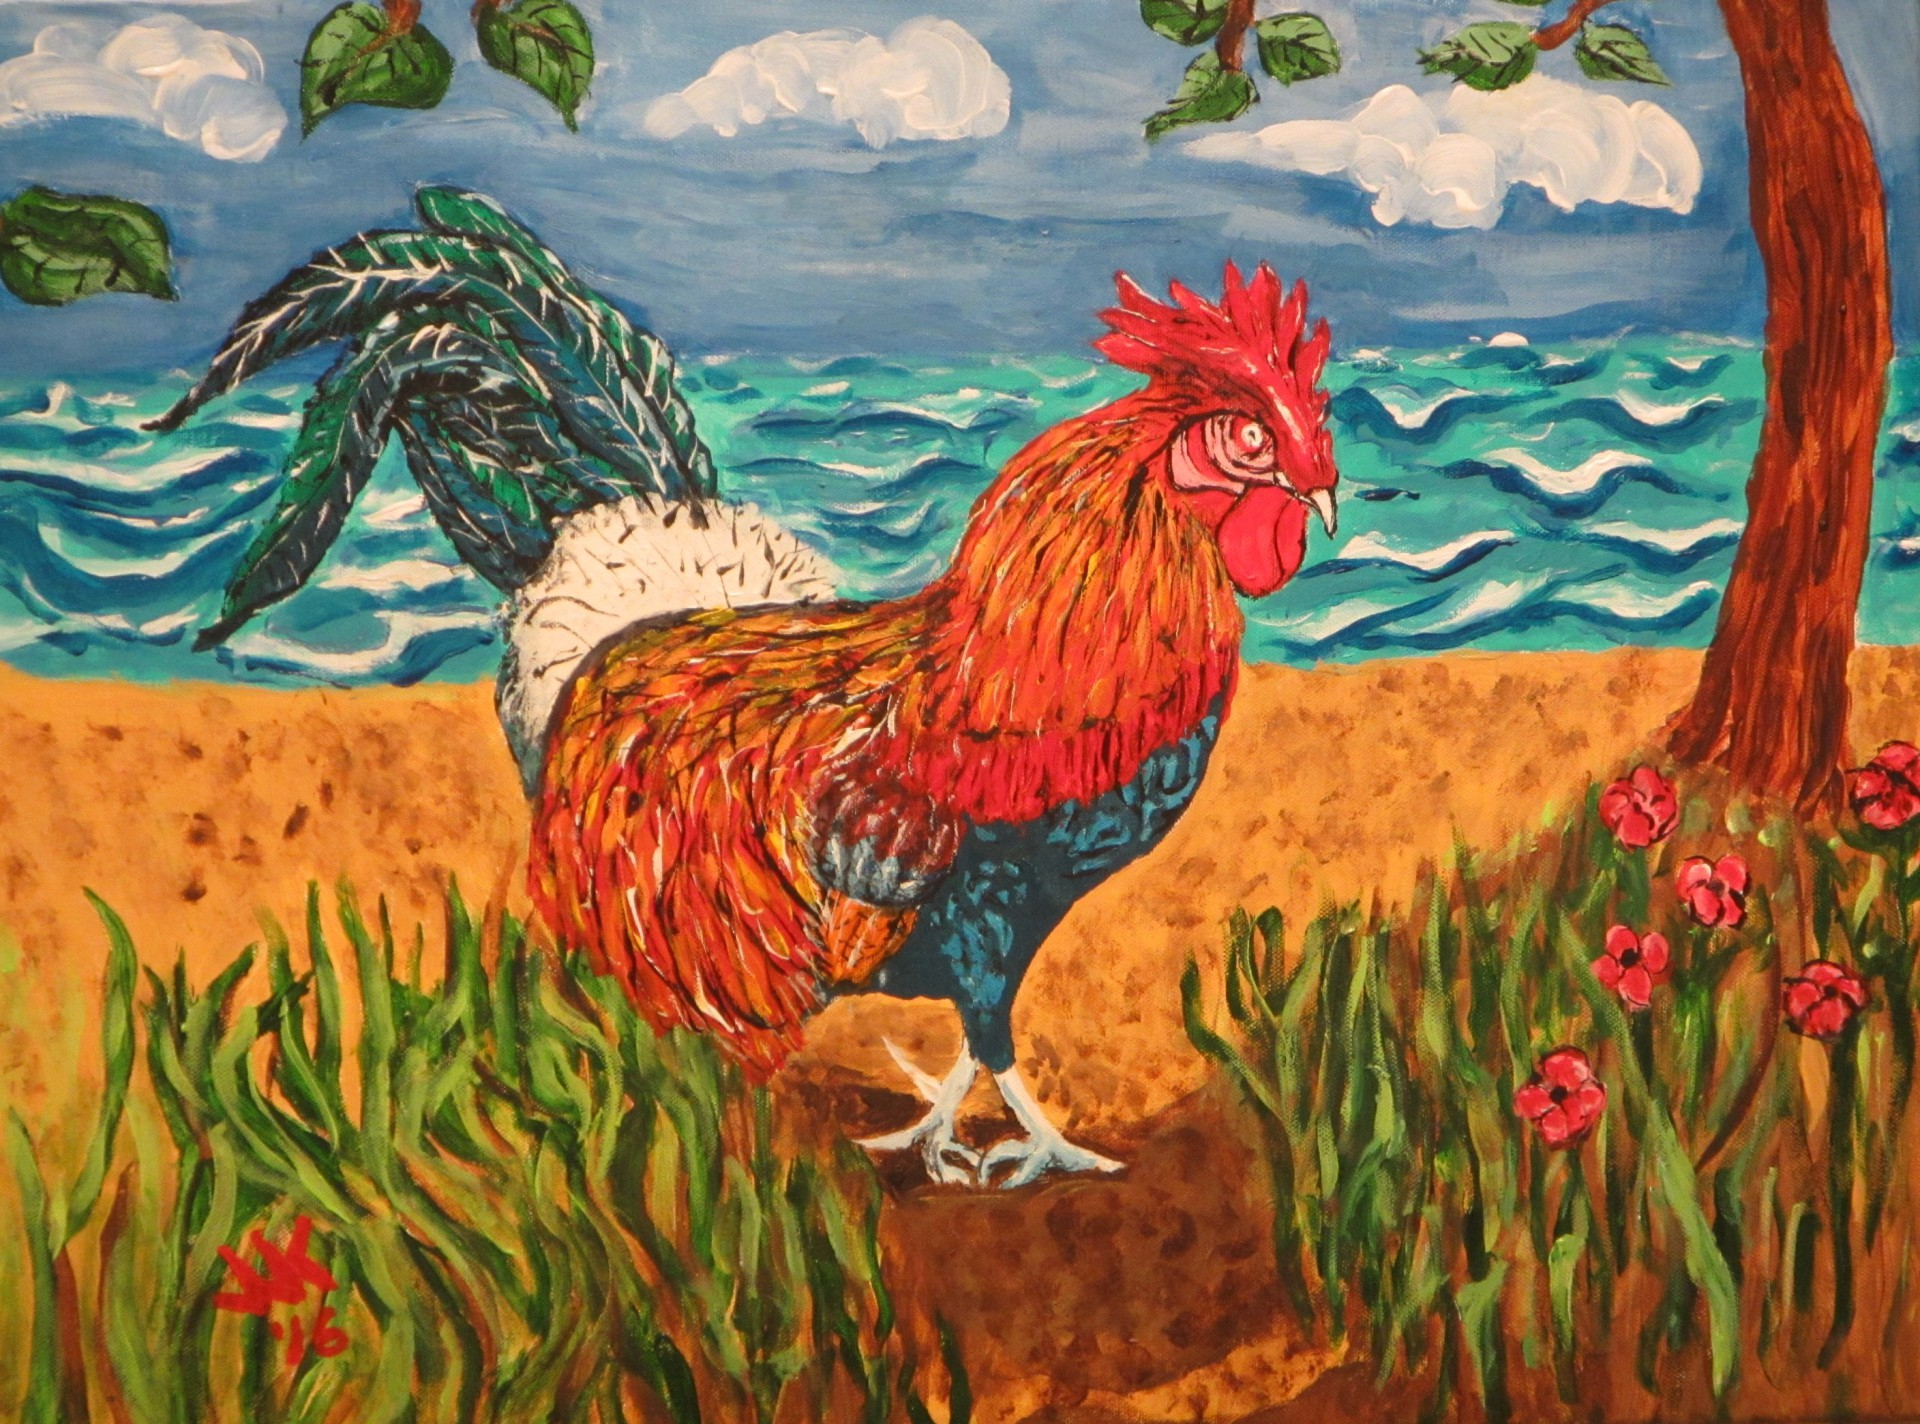 A Kauai Rooster walking back from the beach.